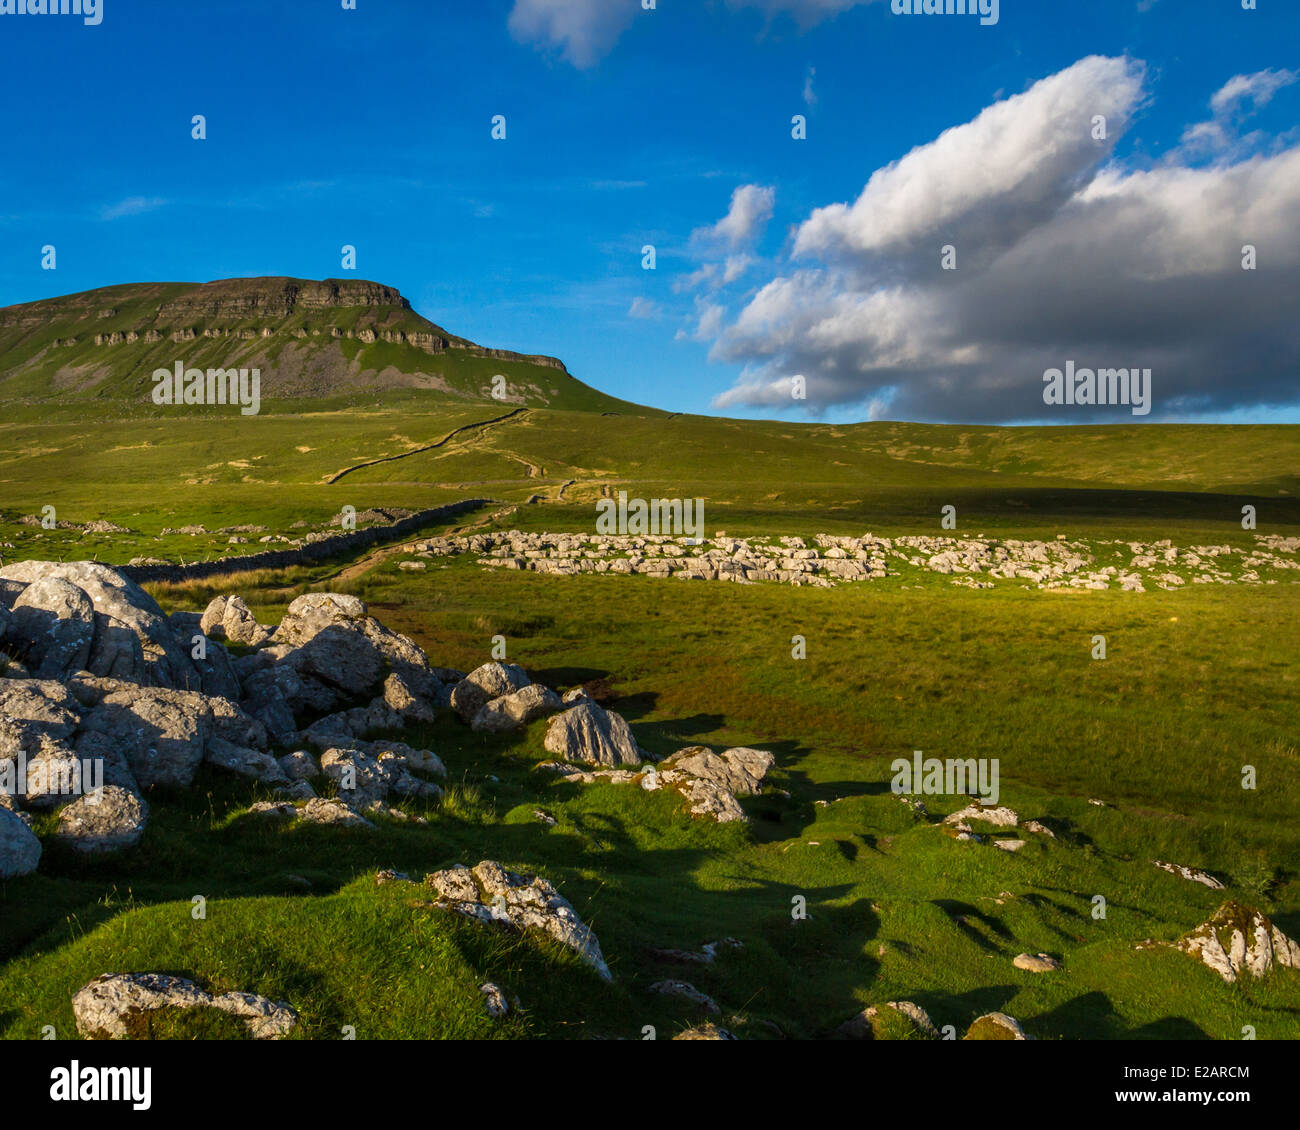 Early morning ascent of Pen-y-Ghent mountain, Yorkshire Dales - Stock Image